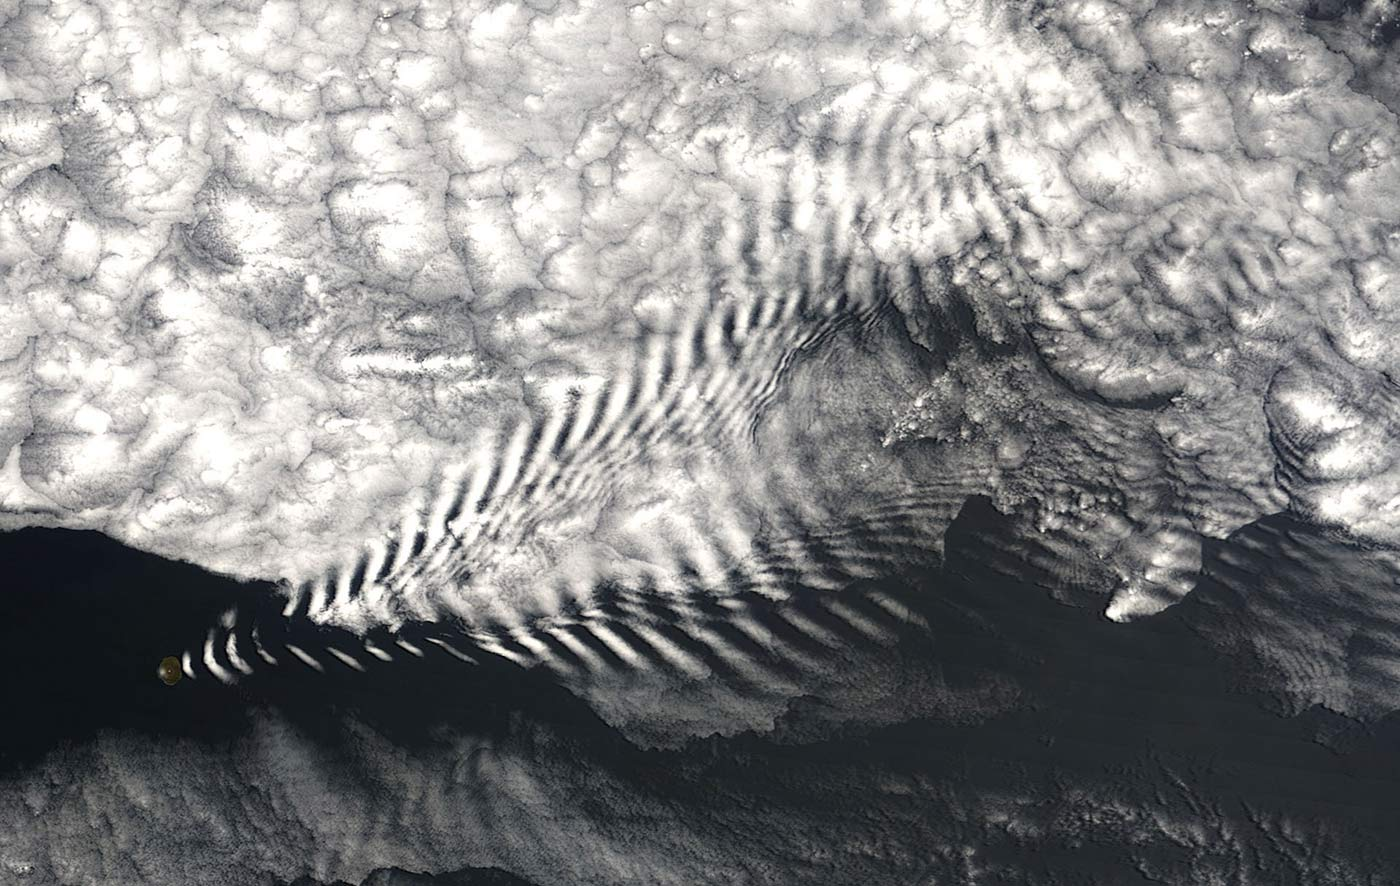 NASA satellite image (MODIS imager on board the Terra satellite) of a wave cloud forming off of Amsterdam Island in the far southern Indian Ocean.